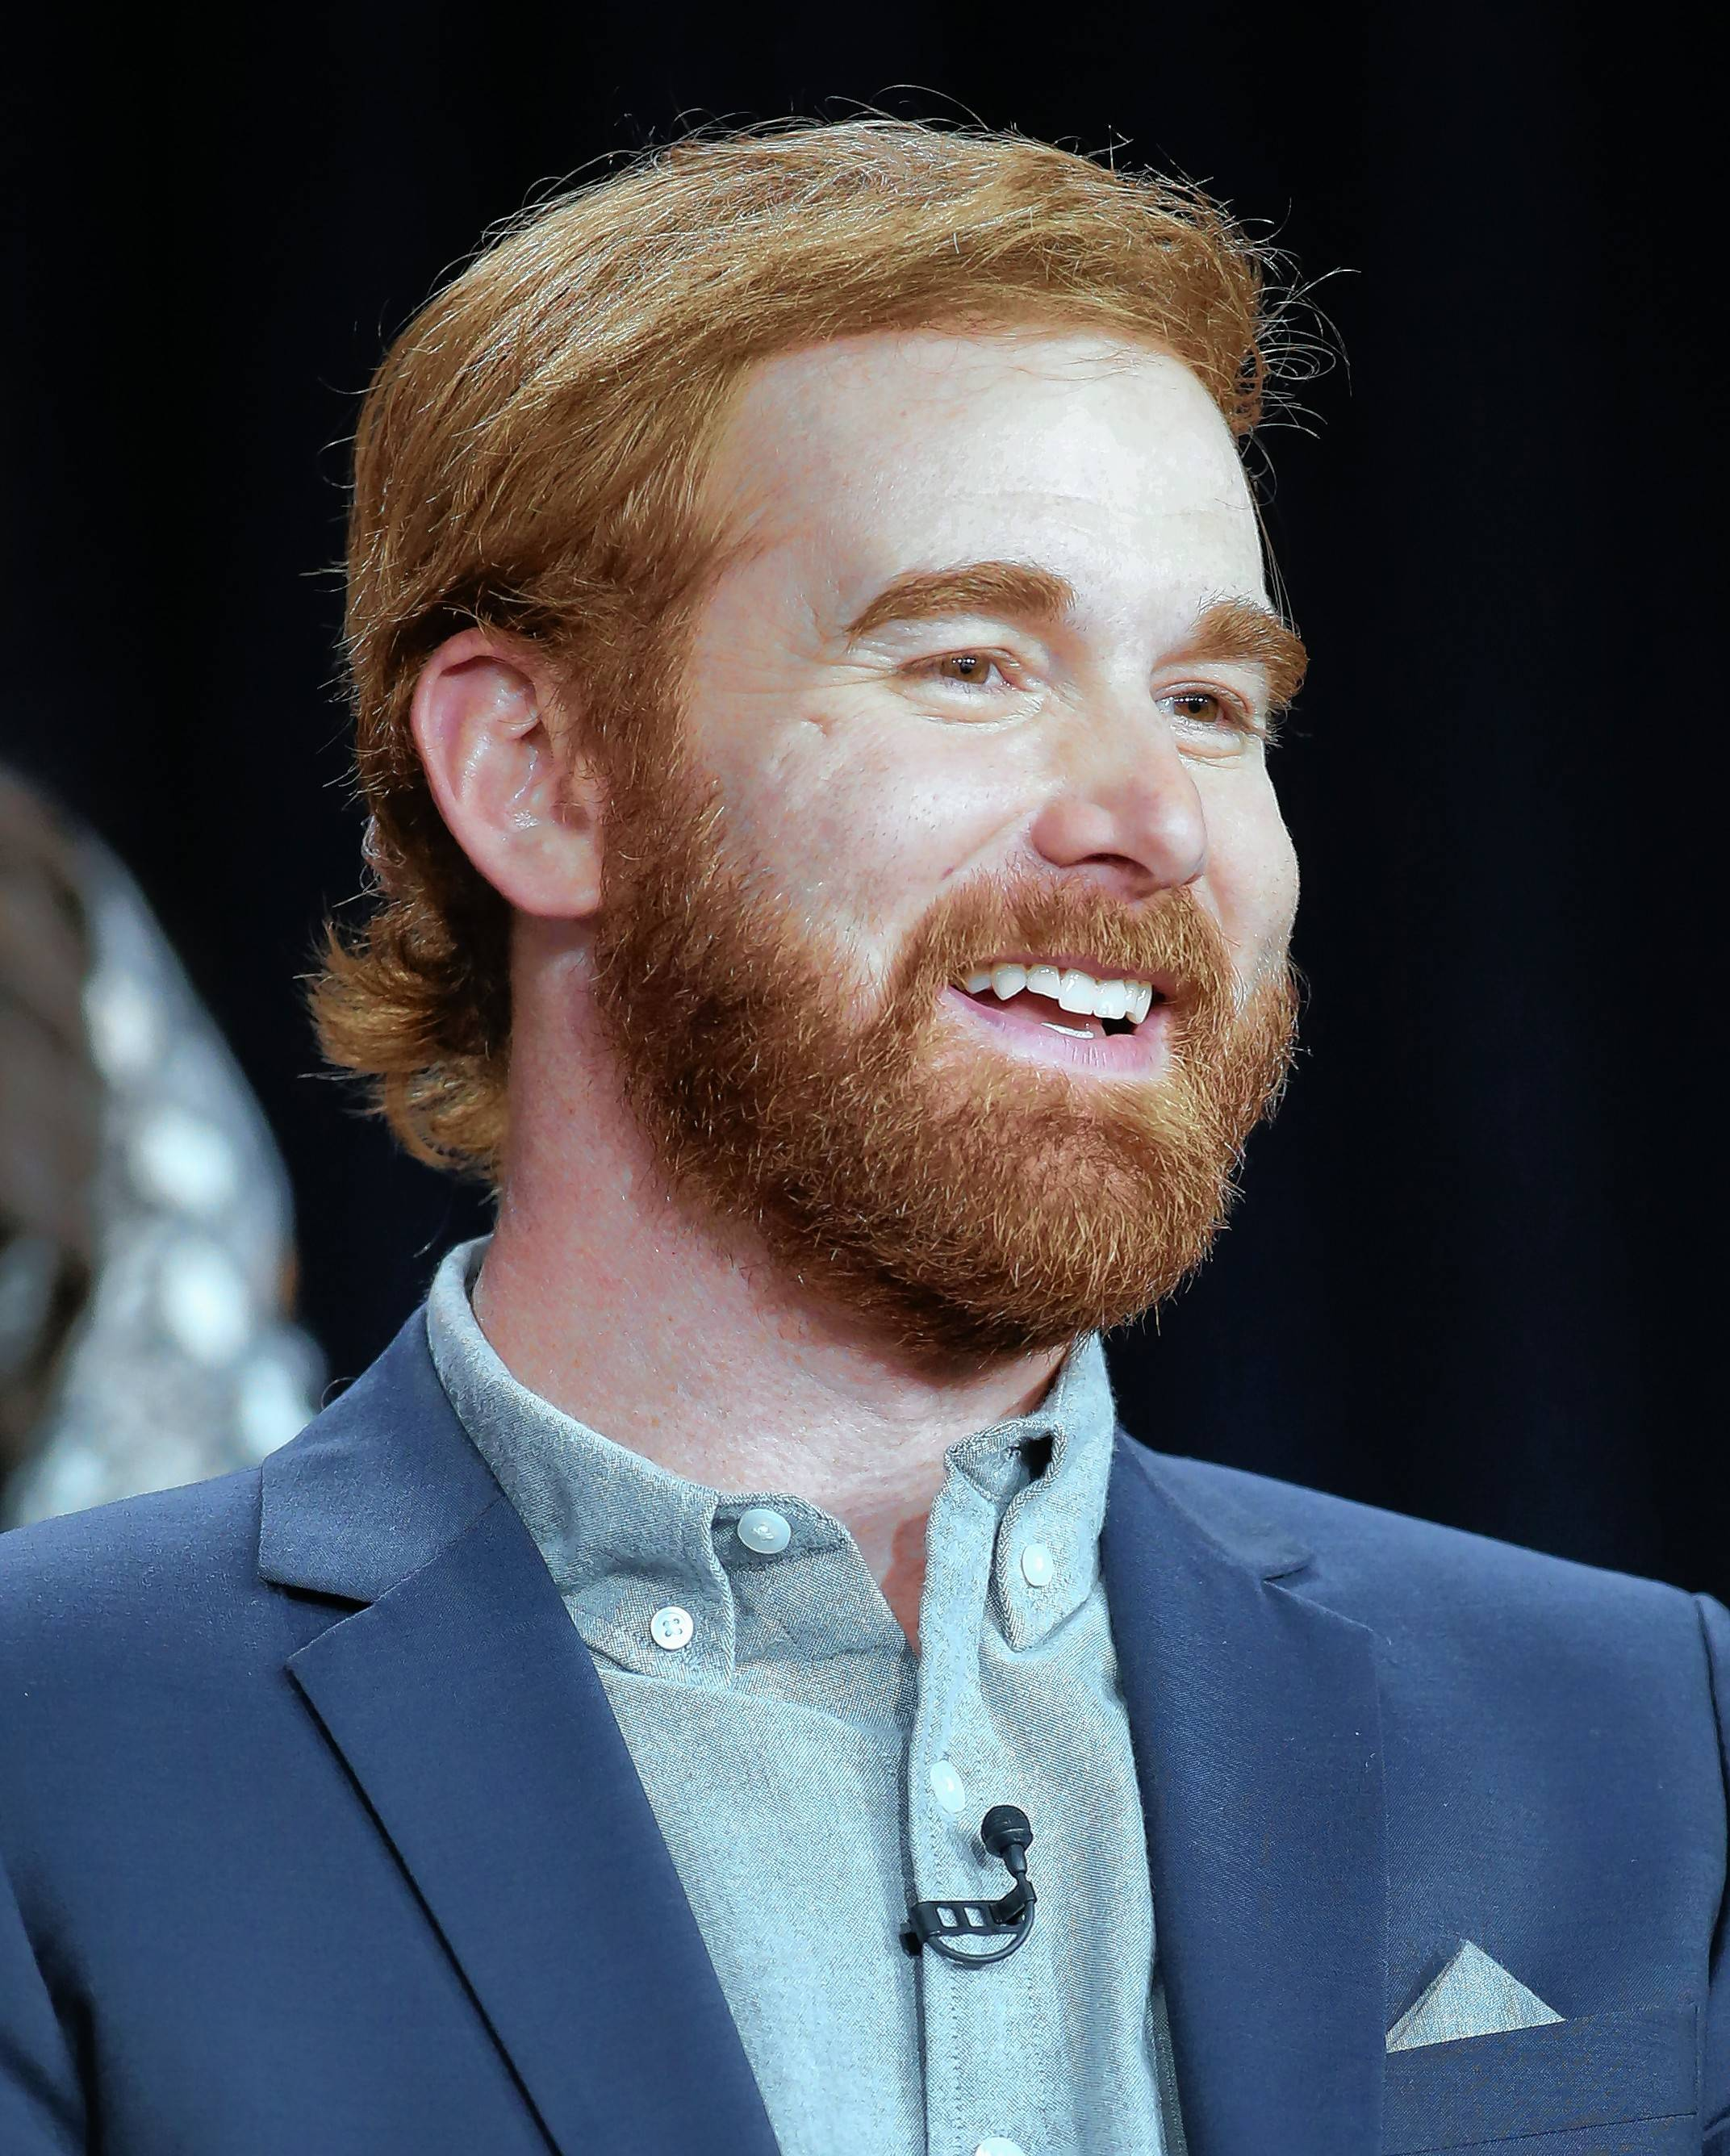 Comedian Andrew Santino performs at the Improv Comedy Showcase in Schaumburg.